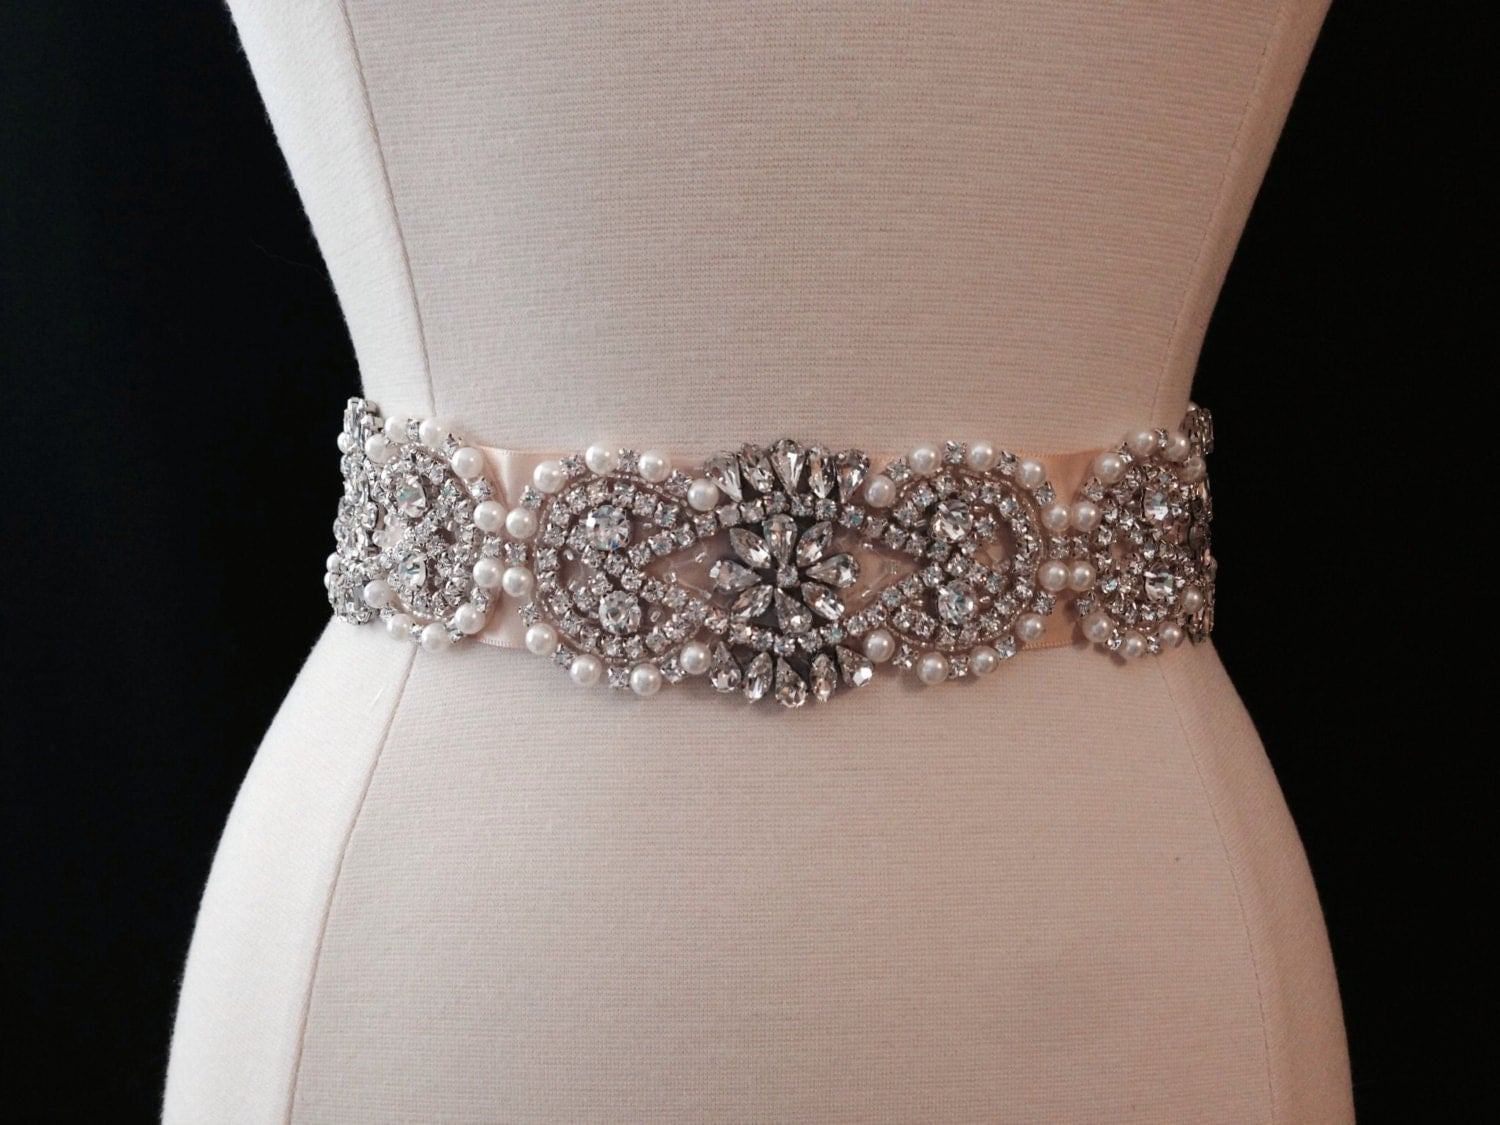 Bridal sash wedding dress sash belt rhinestone and pearl for Rhinestone sash for wedding dress